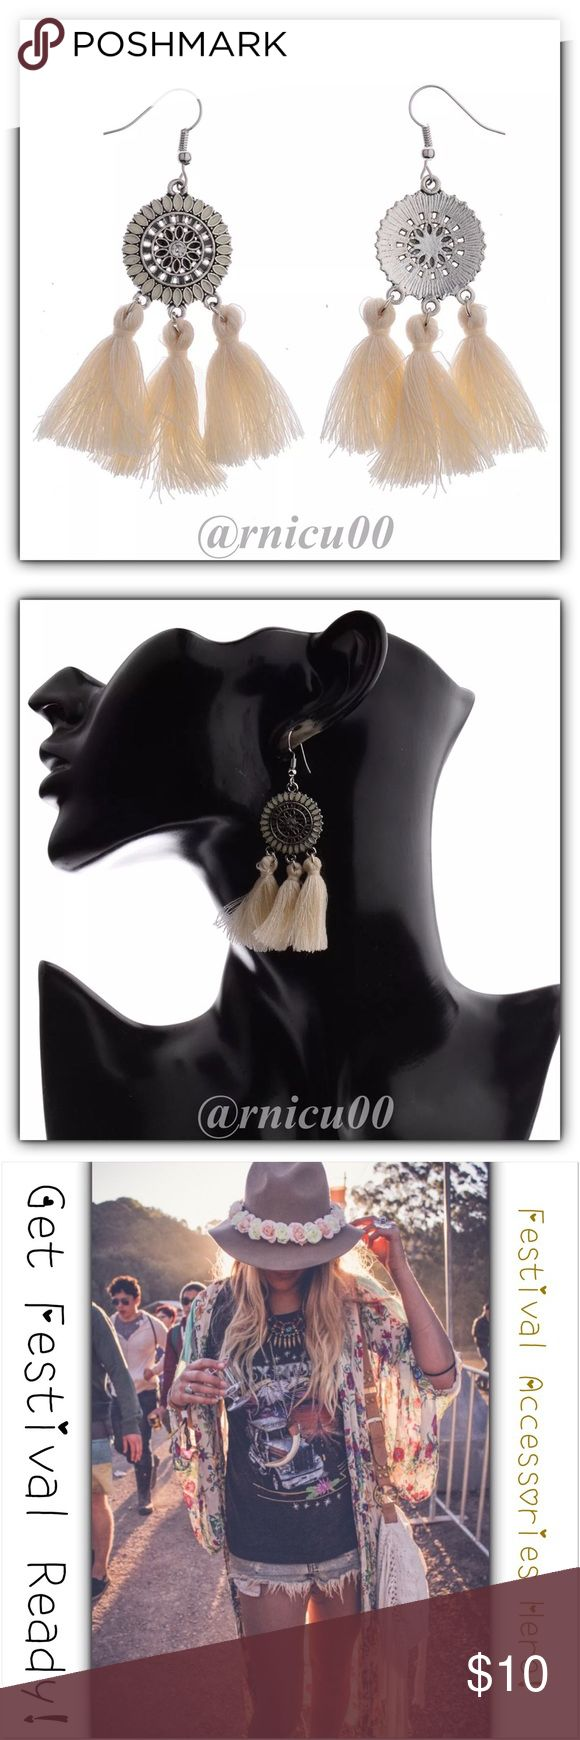 🆕Boho Festival Ready White Tassel Flower Earrings Adorable New Arrival Today, Fun Cotton String Tassel Earrings in 3 Different Colors! 📿Get Festival Ready & Get all your Boho Accessories Here!!📿 Feather, Tassel & Bead Earrings are a TOP TREND this Year! Perfect Accessory for your Festival Dress with White Tassels & Silver Flower Detailing-these are Amazing! 🕶 Hook Style for pierced ears, Not heavy👌  *NO TRADES *Prices are FIRM-Listed at Lowest Price Unless BUNDLED! *Sales are…